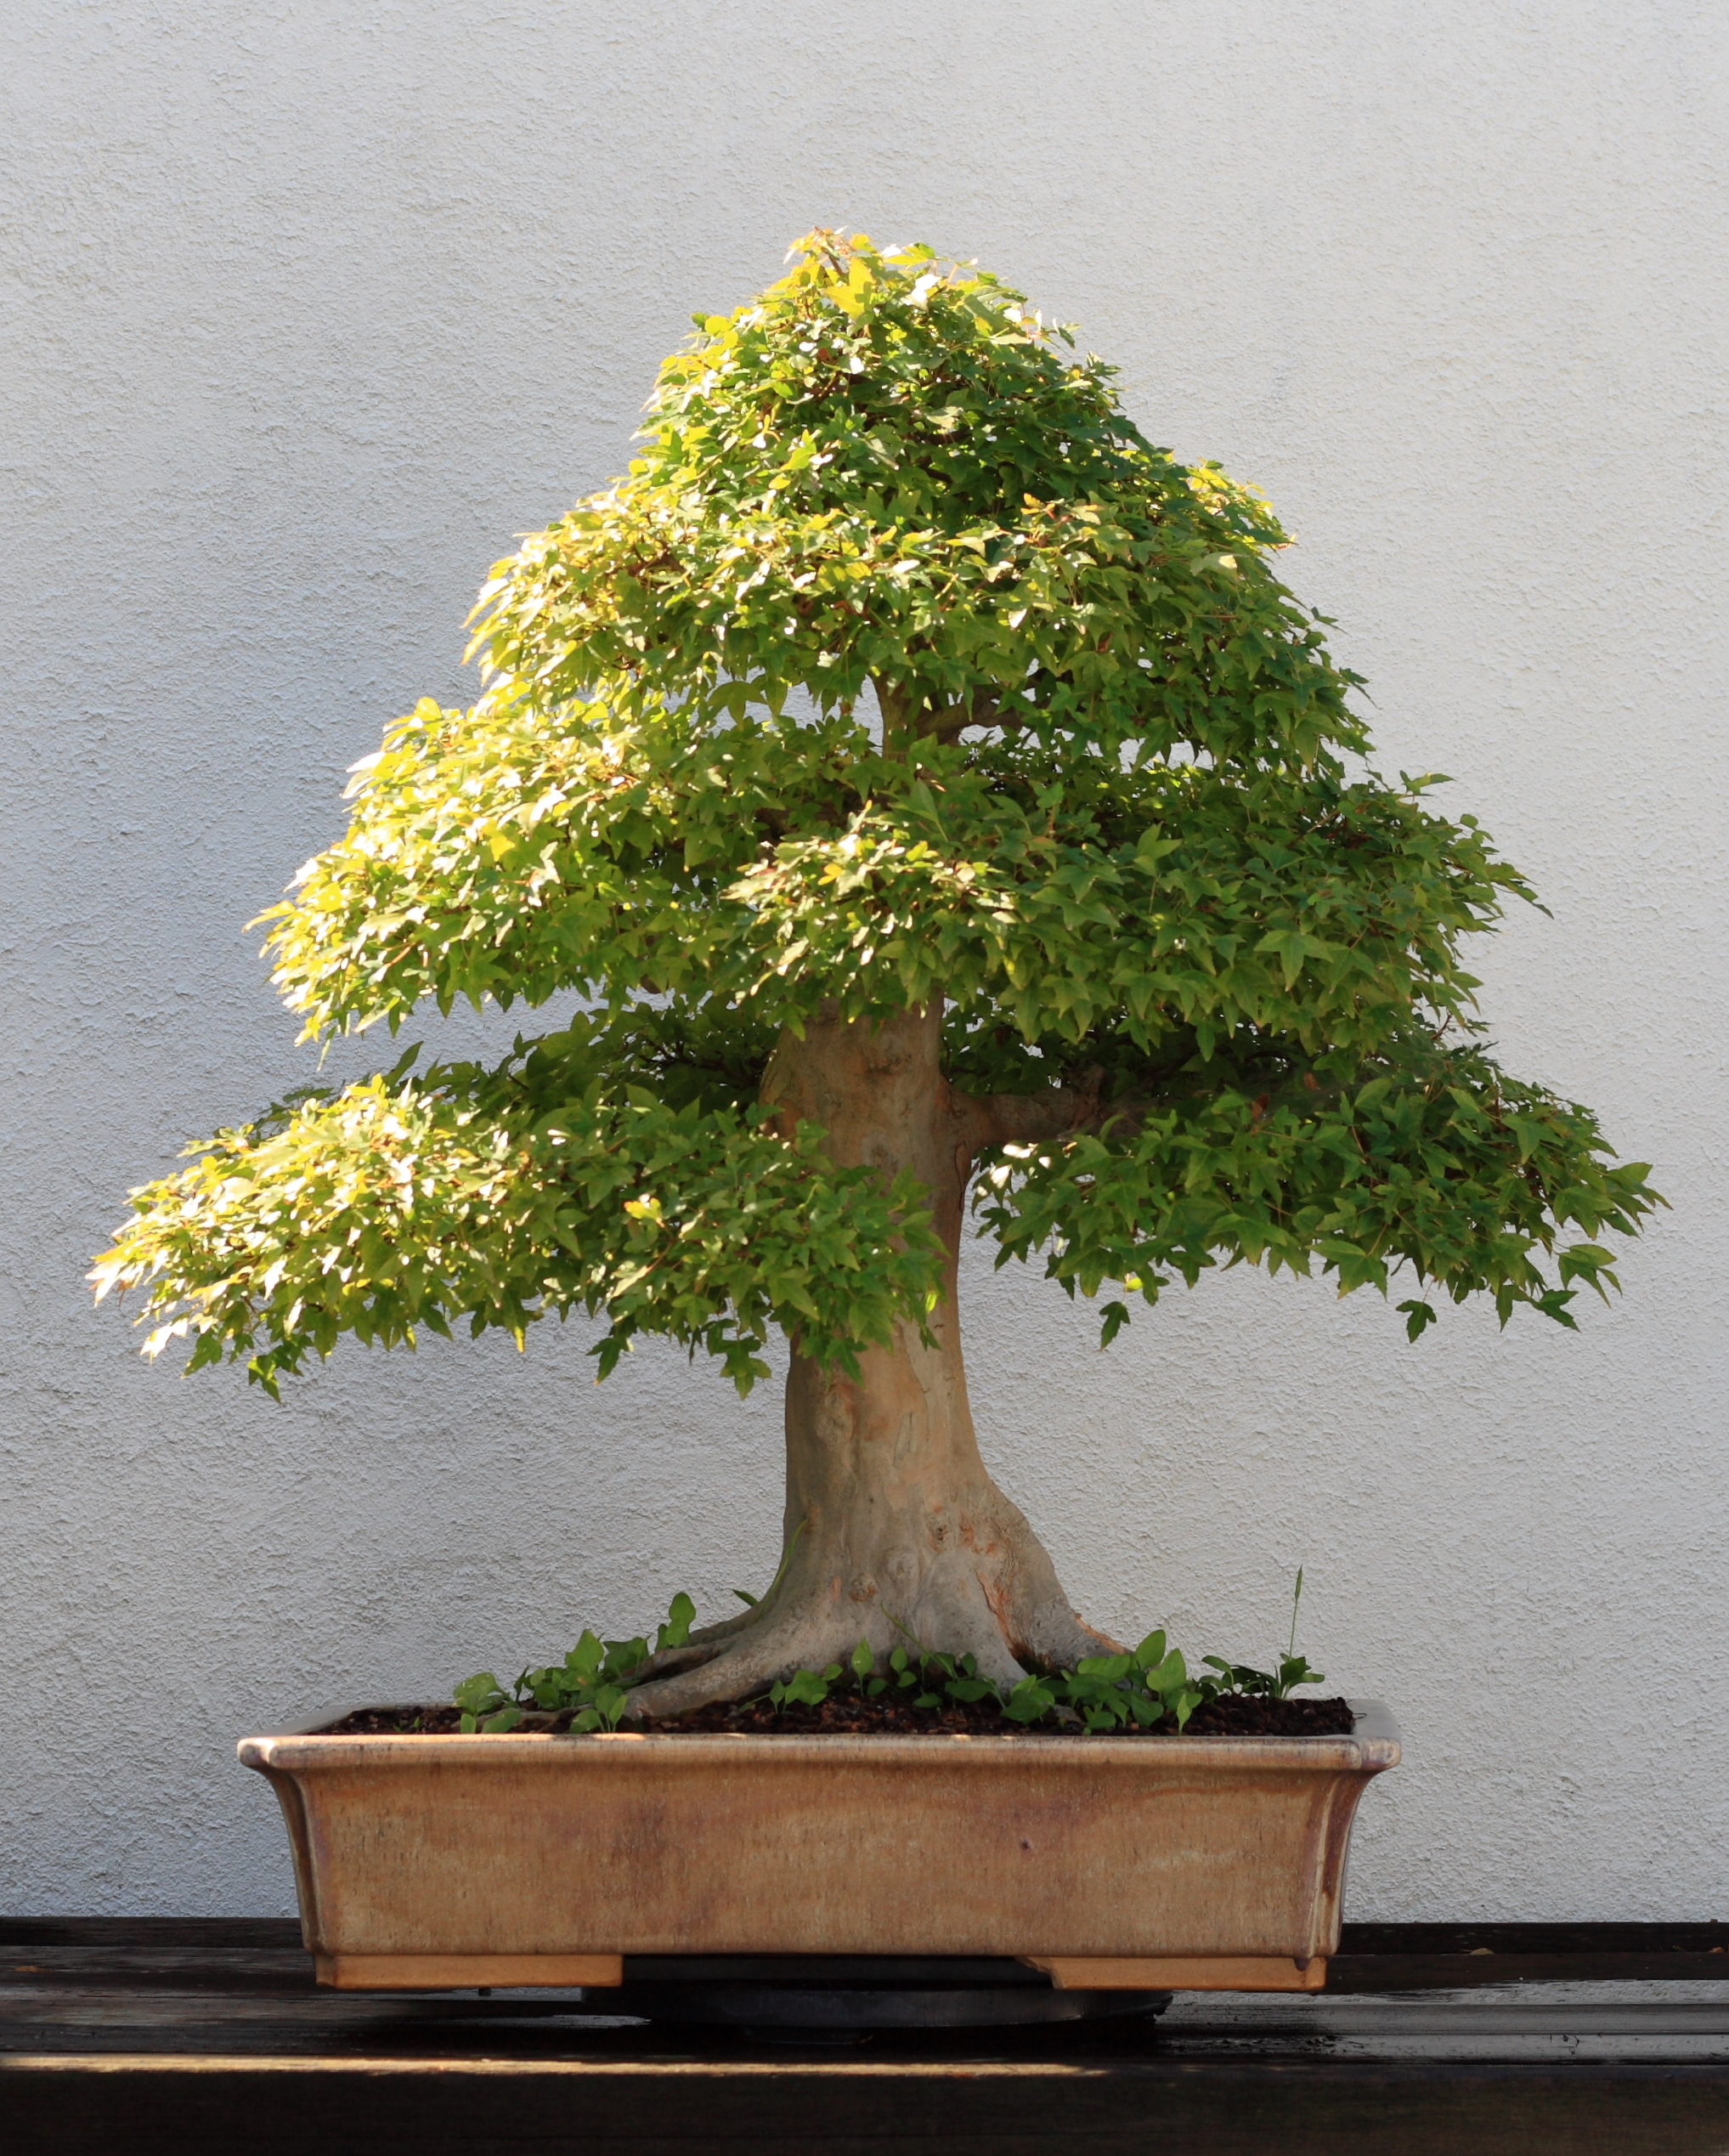 Trident maples on pinterest bonsai peter o 39 toole and trunks for Bonsai tree pics